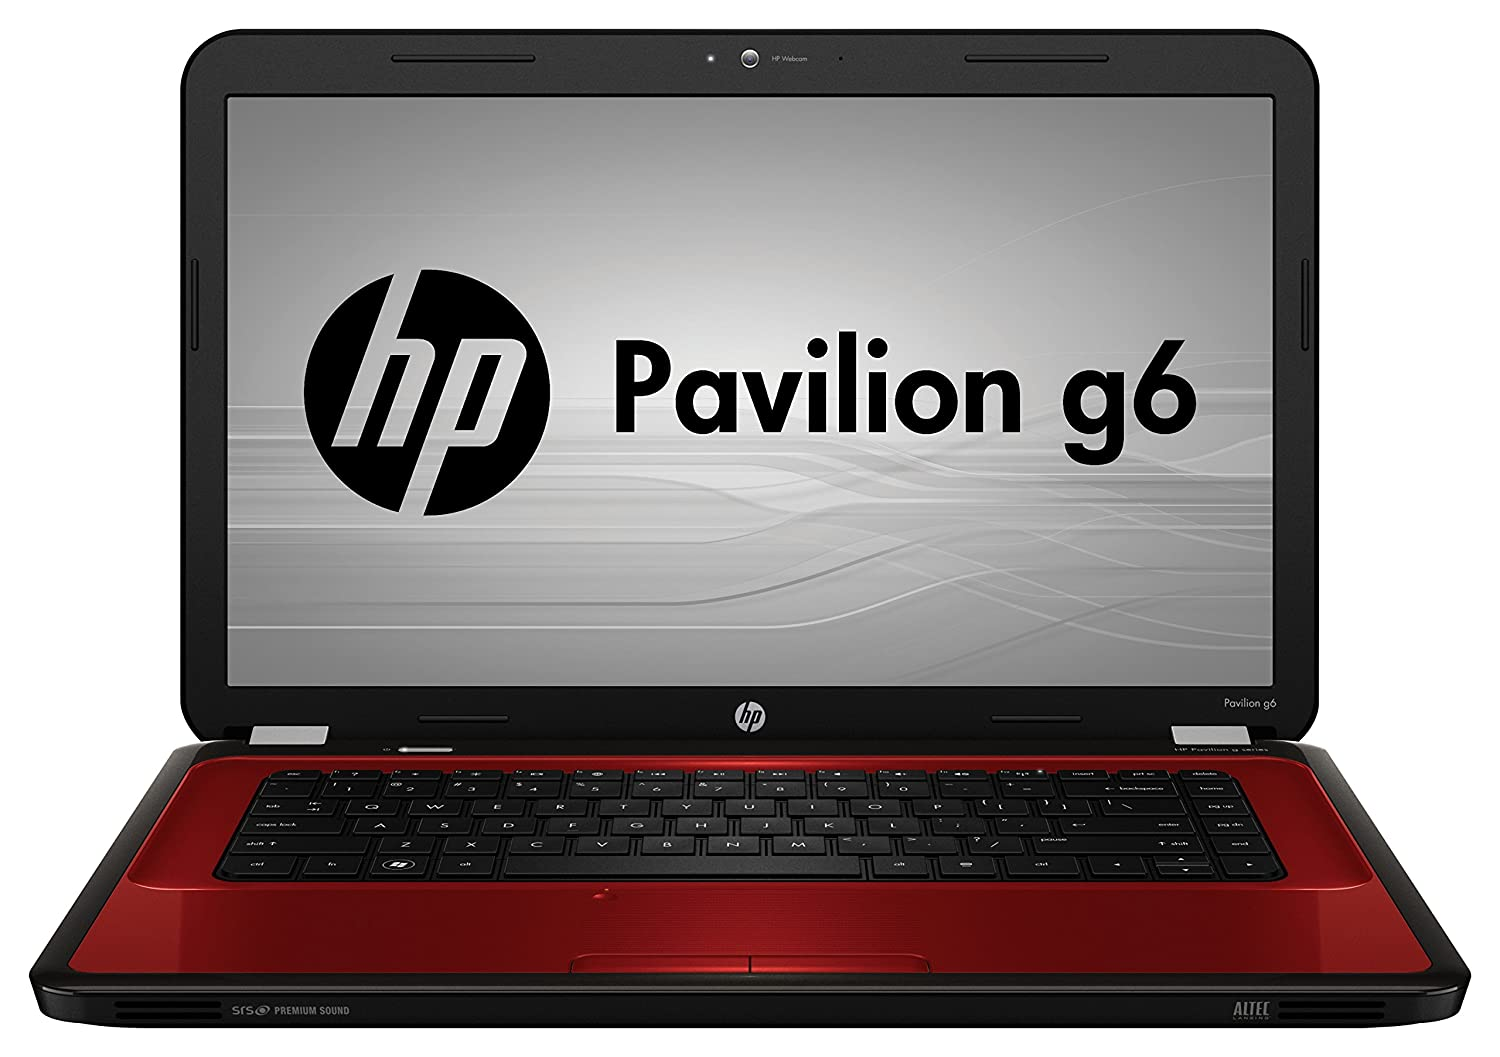 Amazon.com: HP g6-1d48dx 15.6